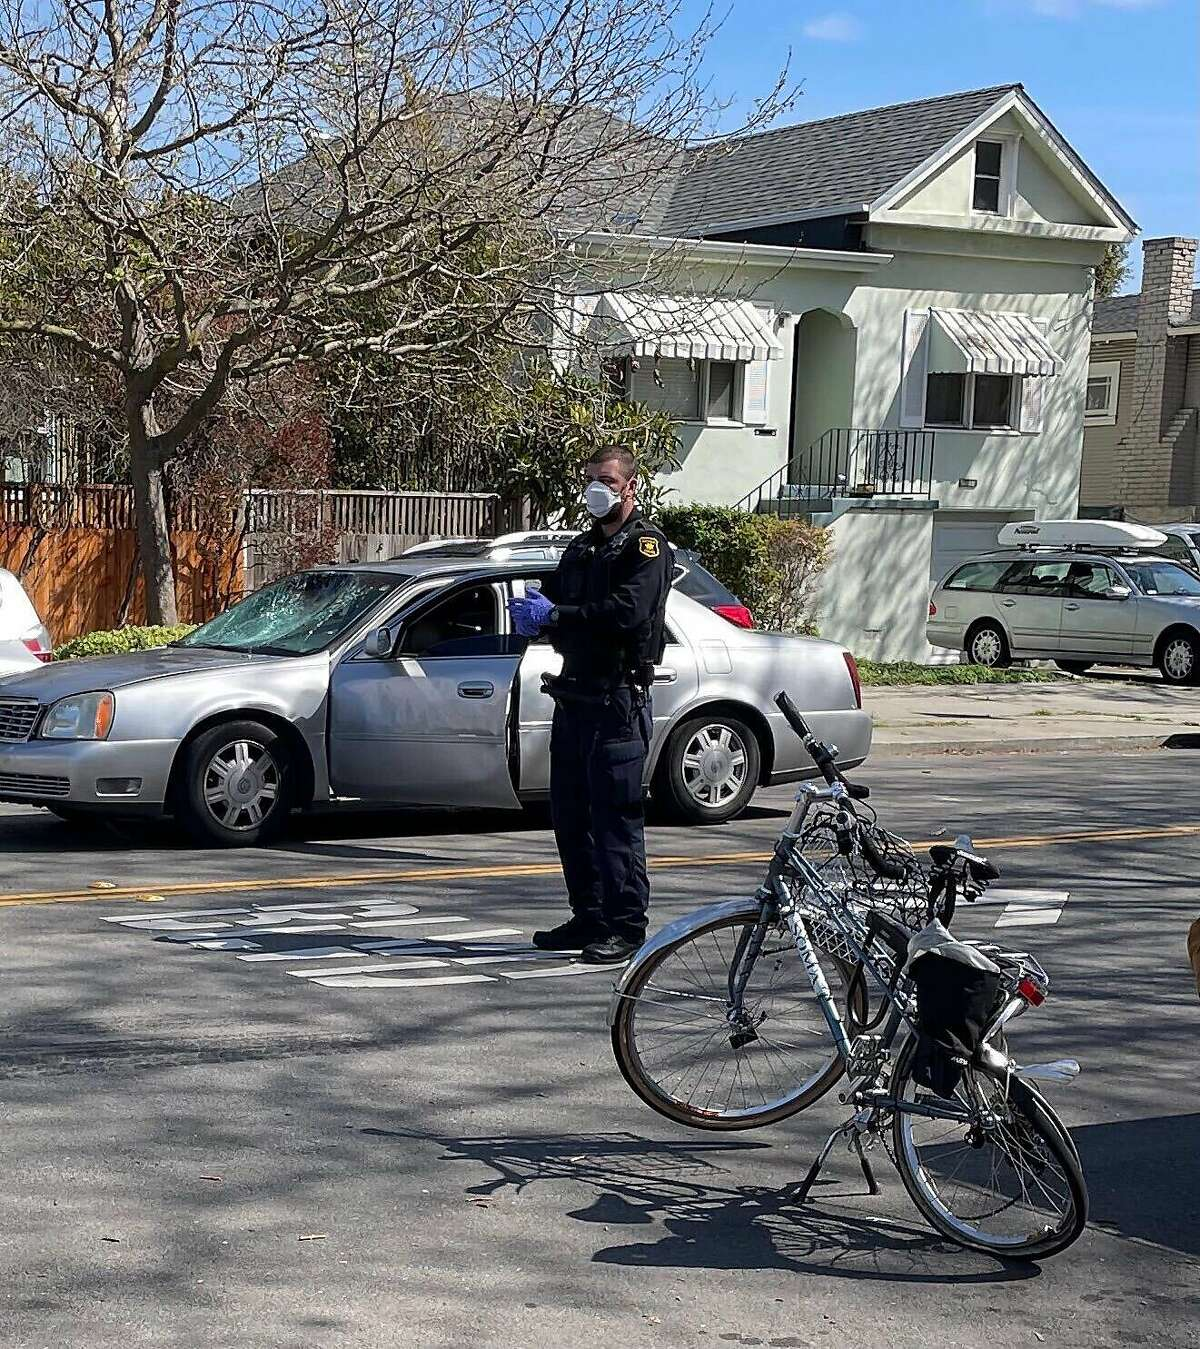 Jackie Erbe, a bike lane activist, was rear-ended by a car on Mar.16, 2021 while bicycling with her 8-year old child on 9th Street near Channing Way, seen here.